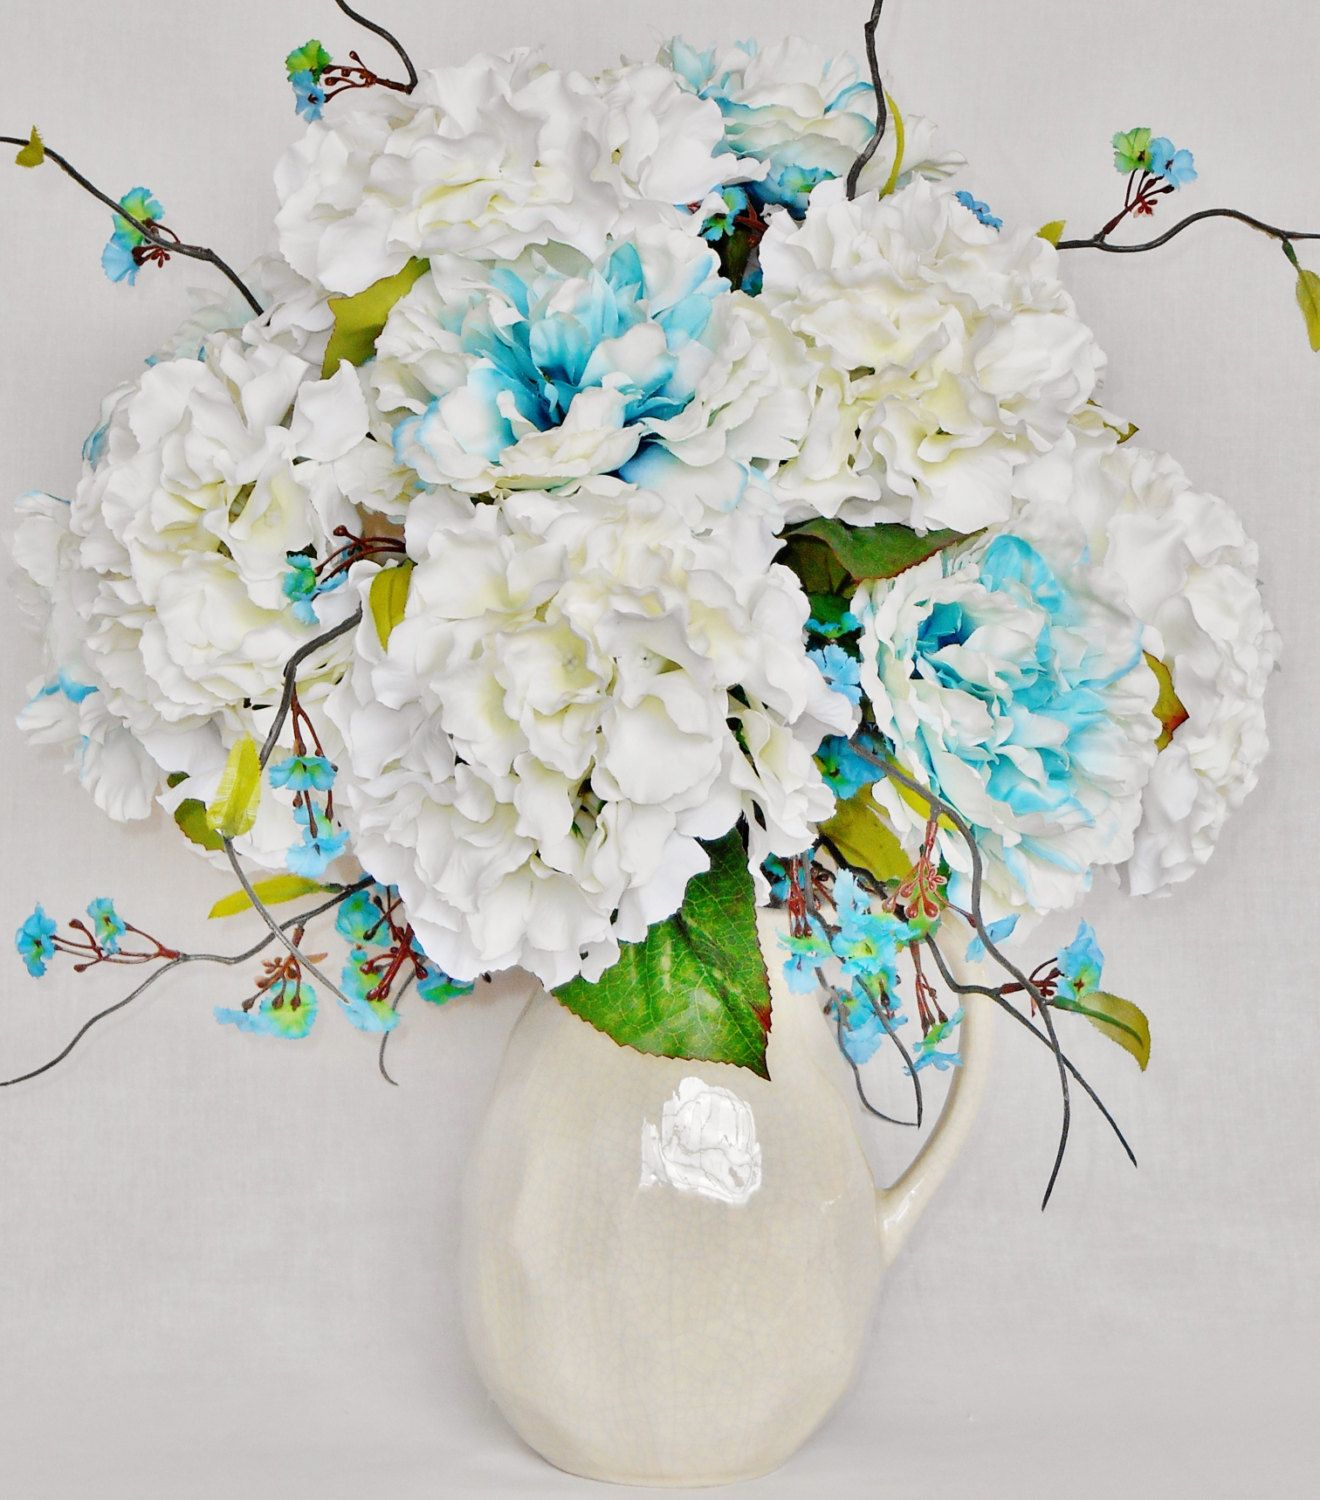 artificial flower arrangement turquoise white peonies. Black Bedroom Furniture Sets. Home Design Ideas